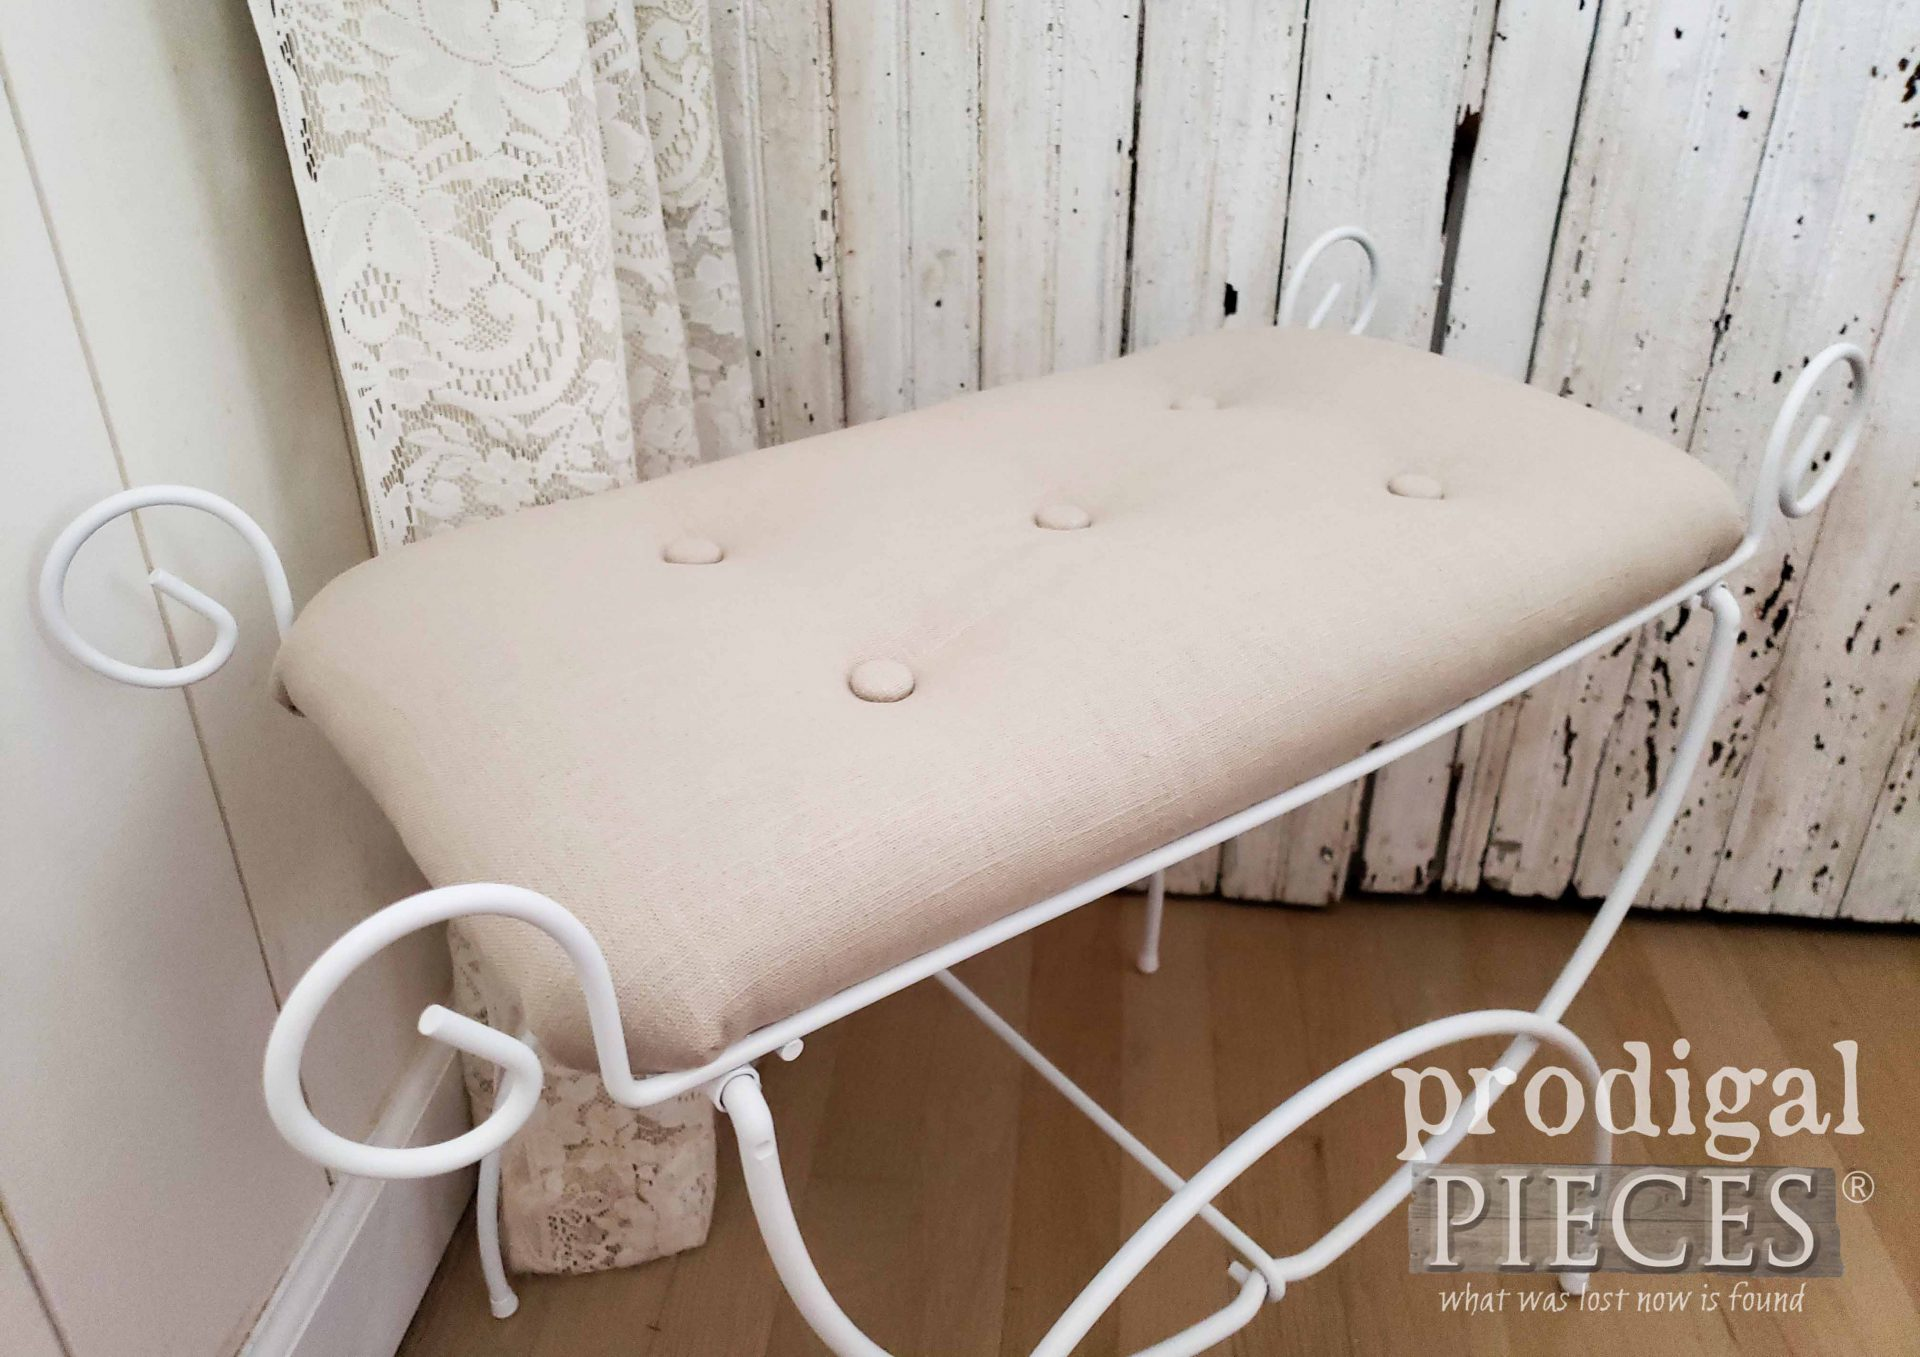 Tufted Linen Vanity Seat with Tutorial by Larissa of Prodigal Pieces | prodigalpieces.com #prodigalpieces #diy #home #homedecor #furniture #farmhouse